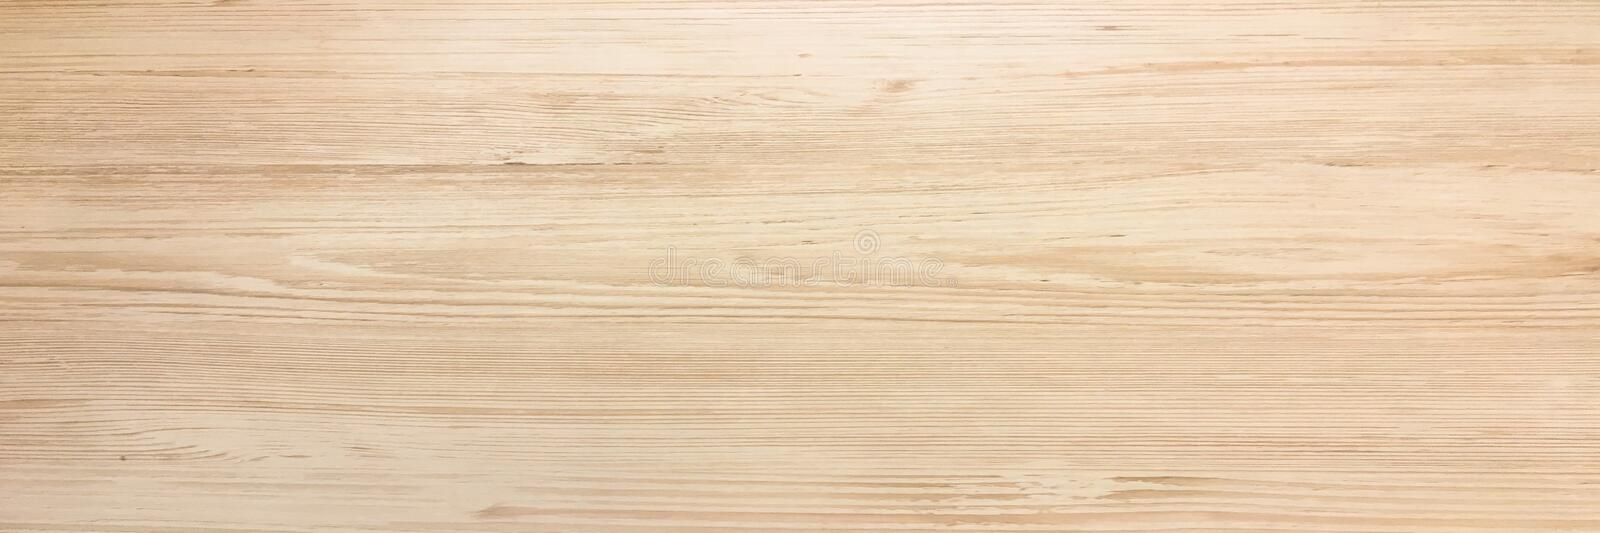 Wood texture background, light weathered rustic oak. faded wooden varnished paint showing woodgrain texture. hardwood royalty free stock image